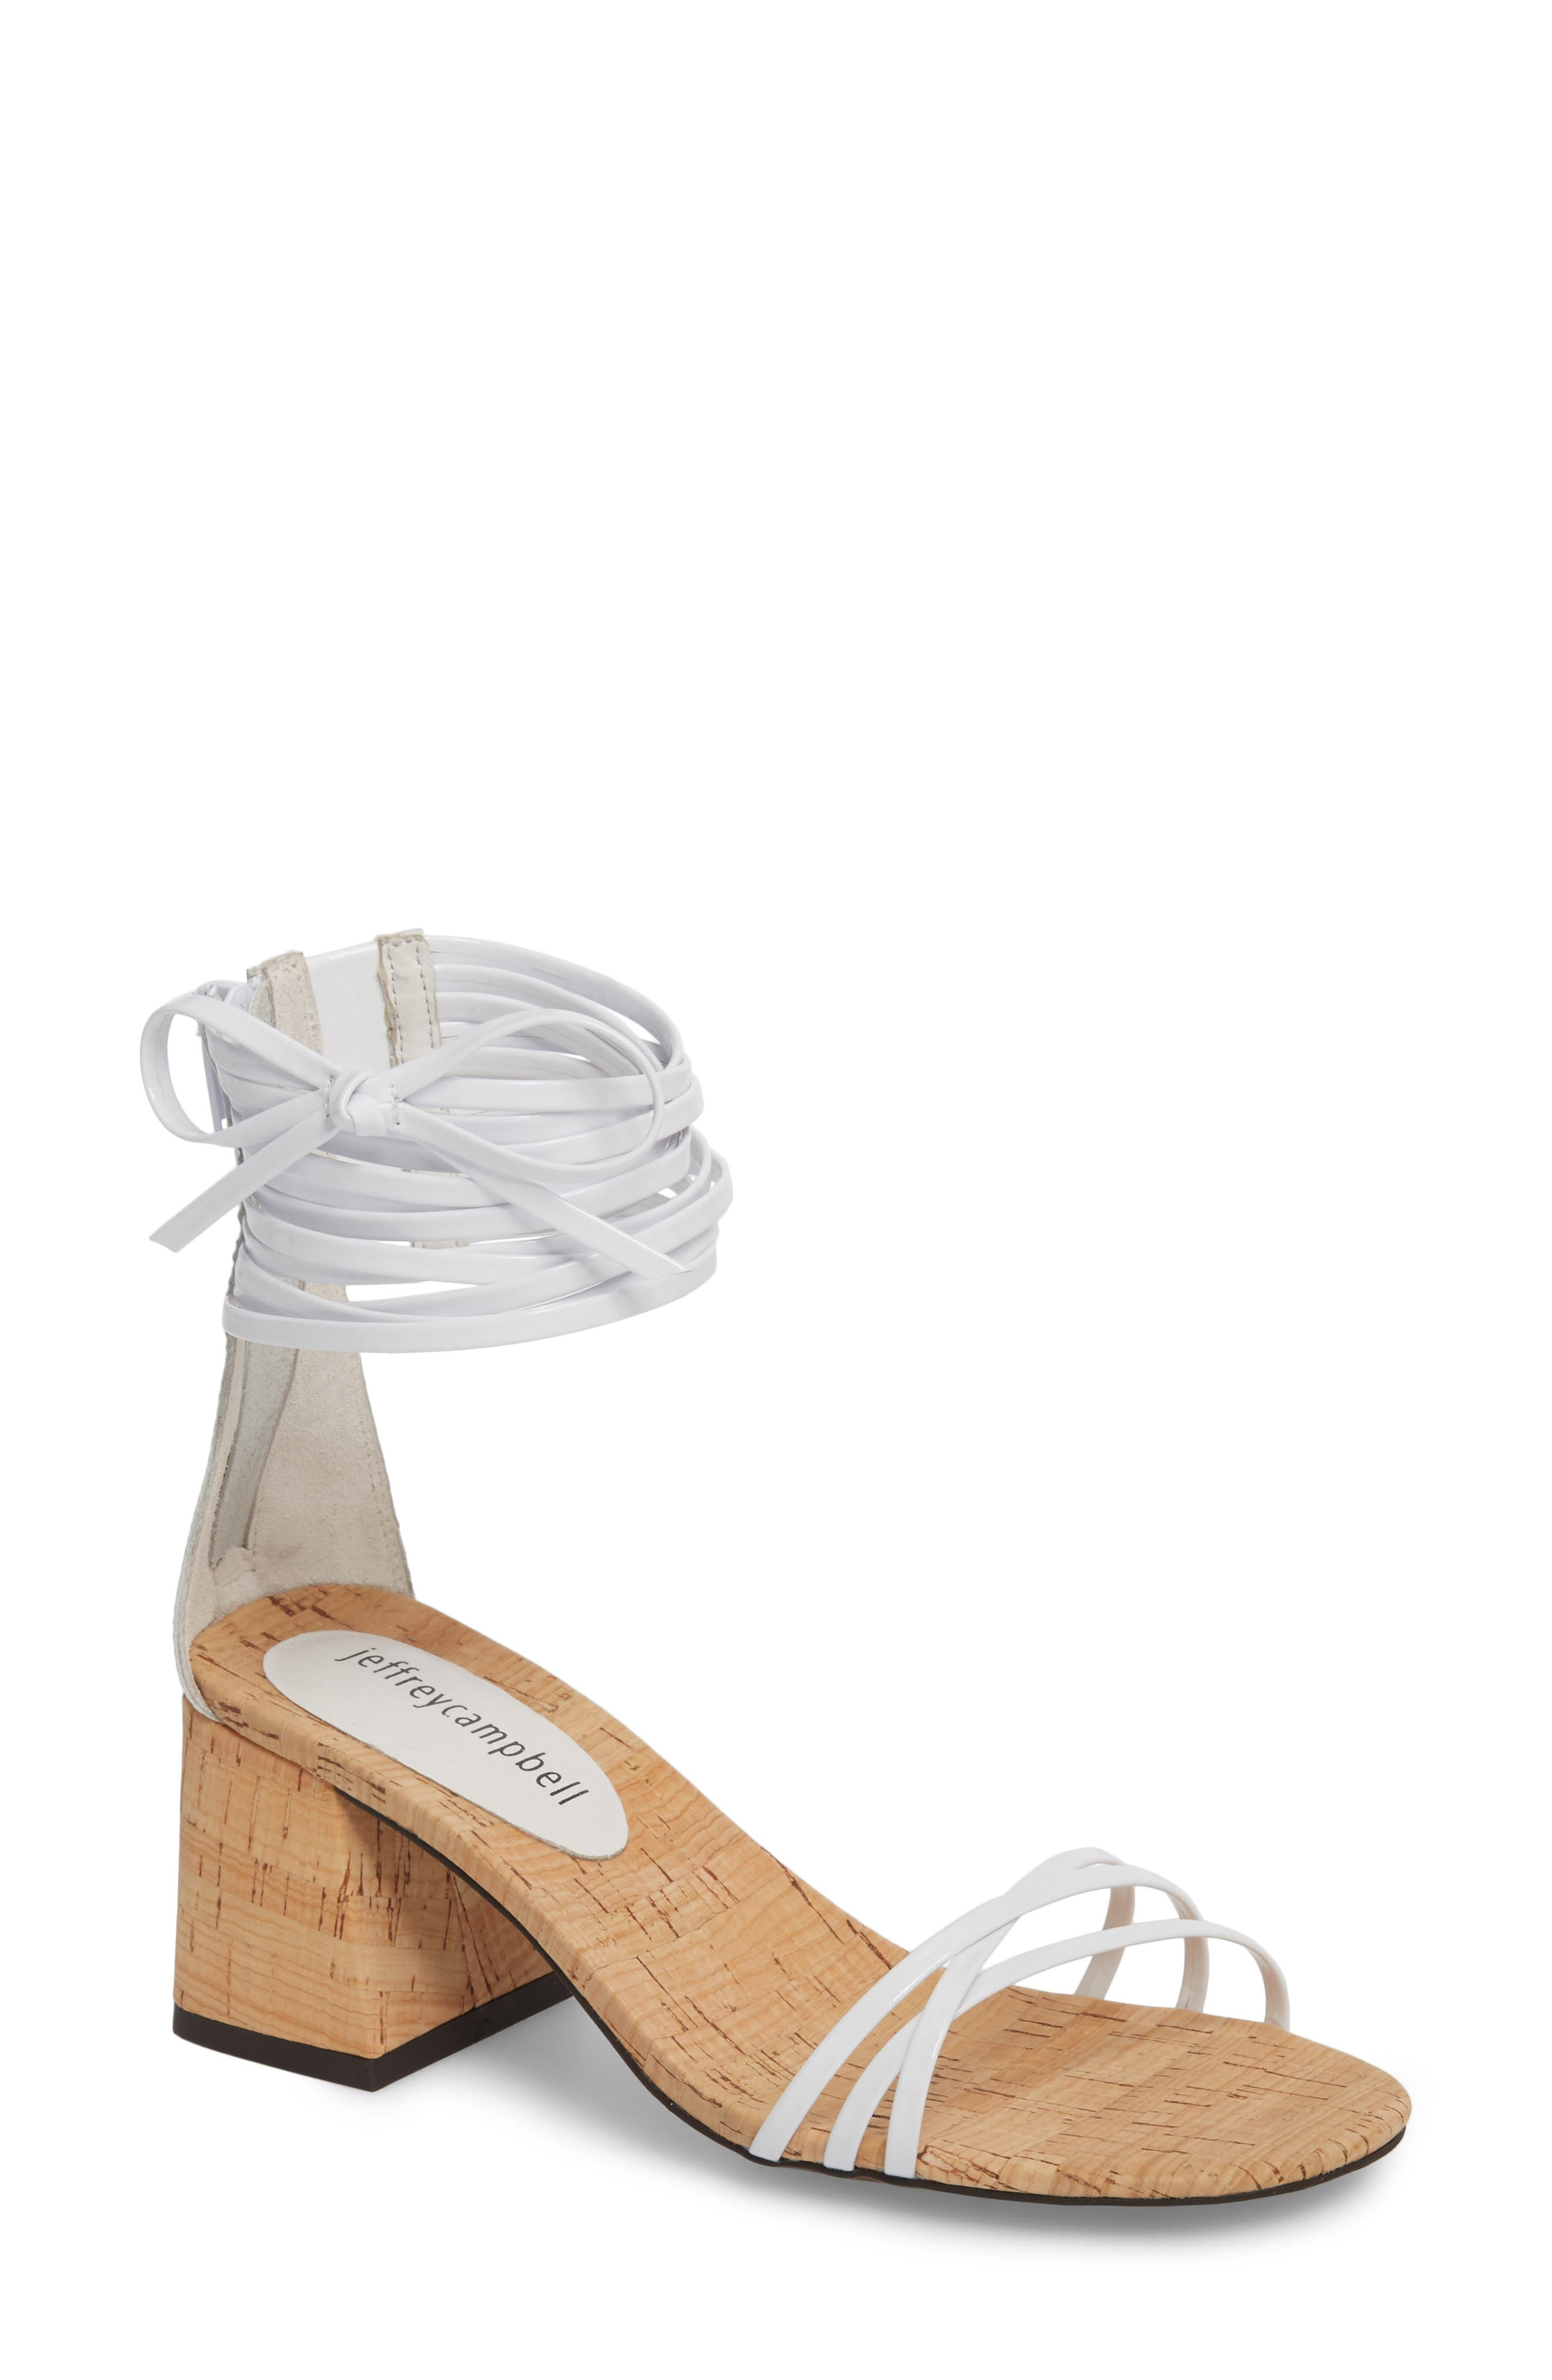 Jeffrey Campbell Women's Everglade Ankle Strap Sandal Sihf5OS